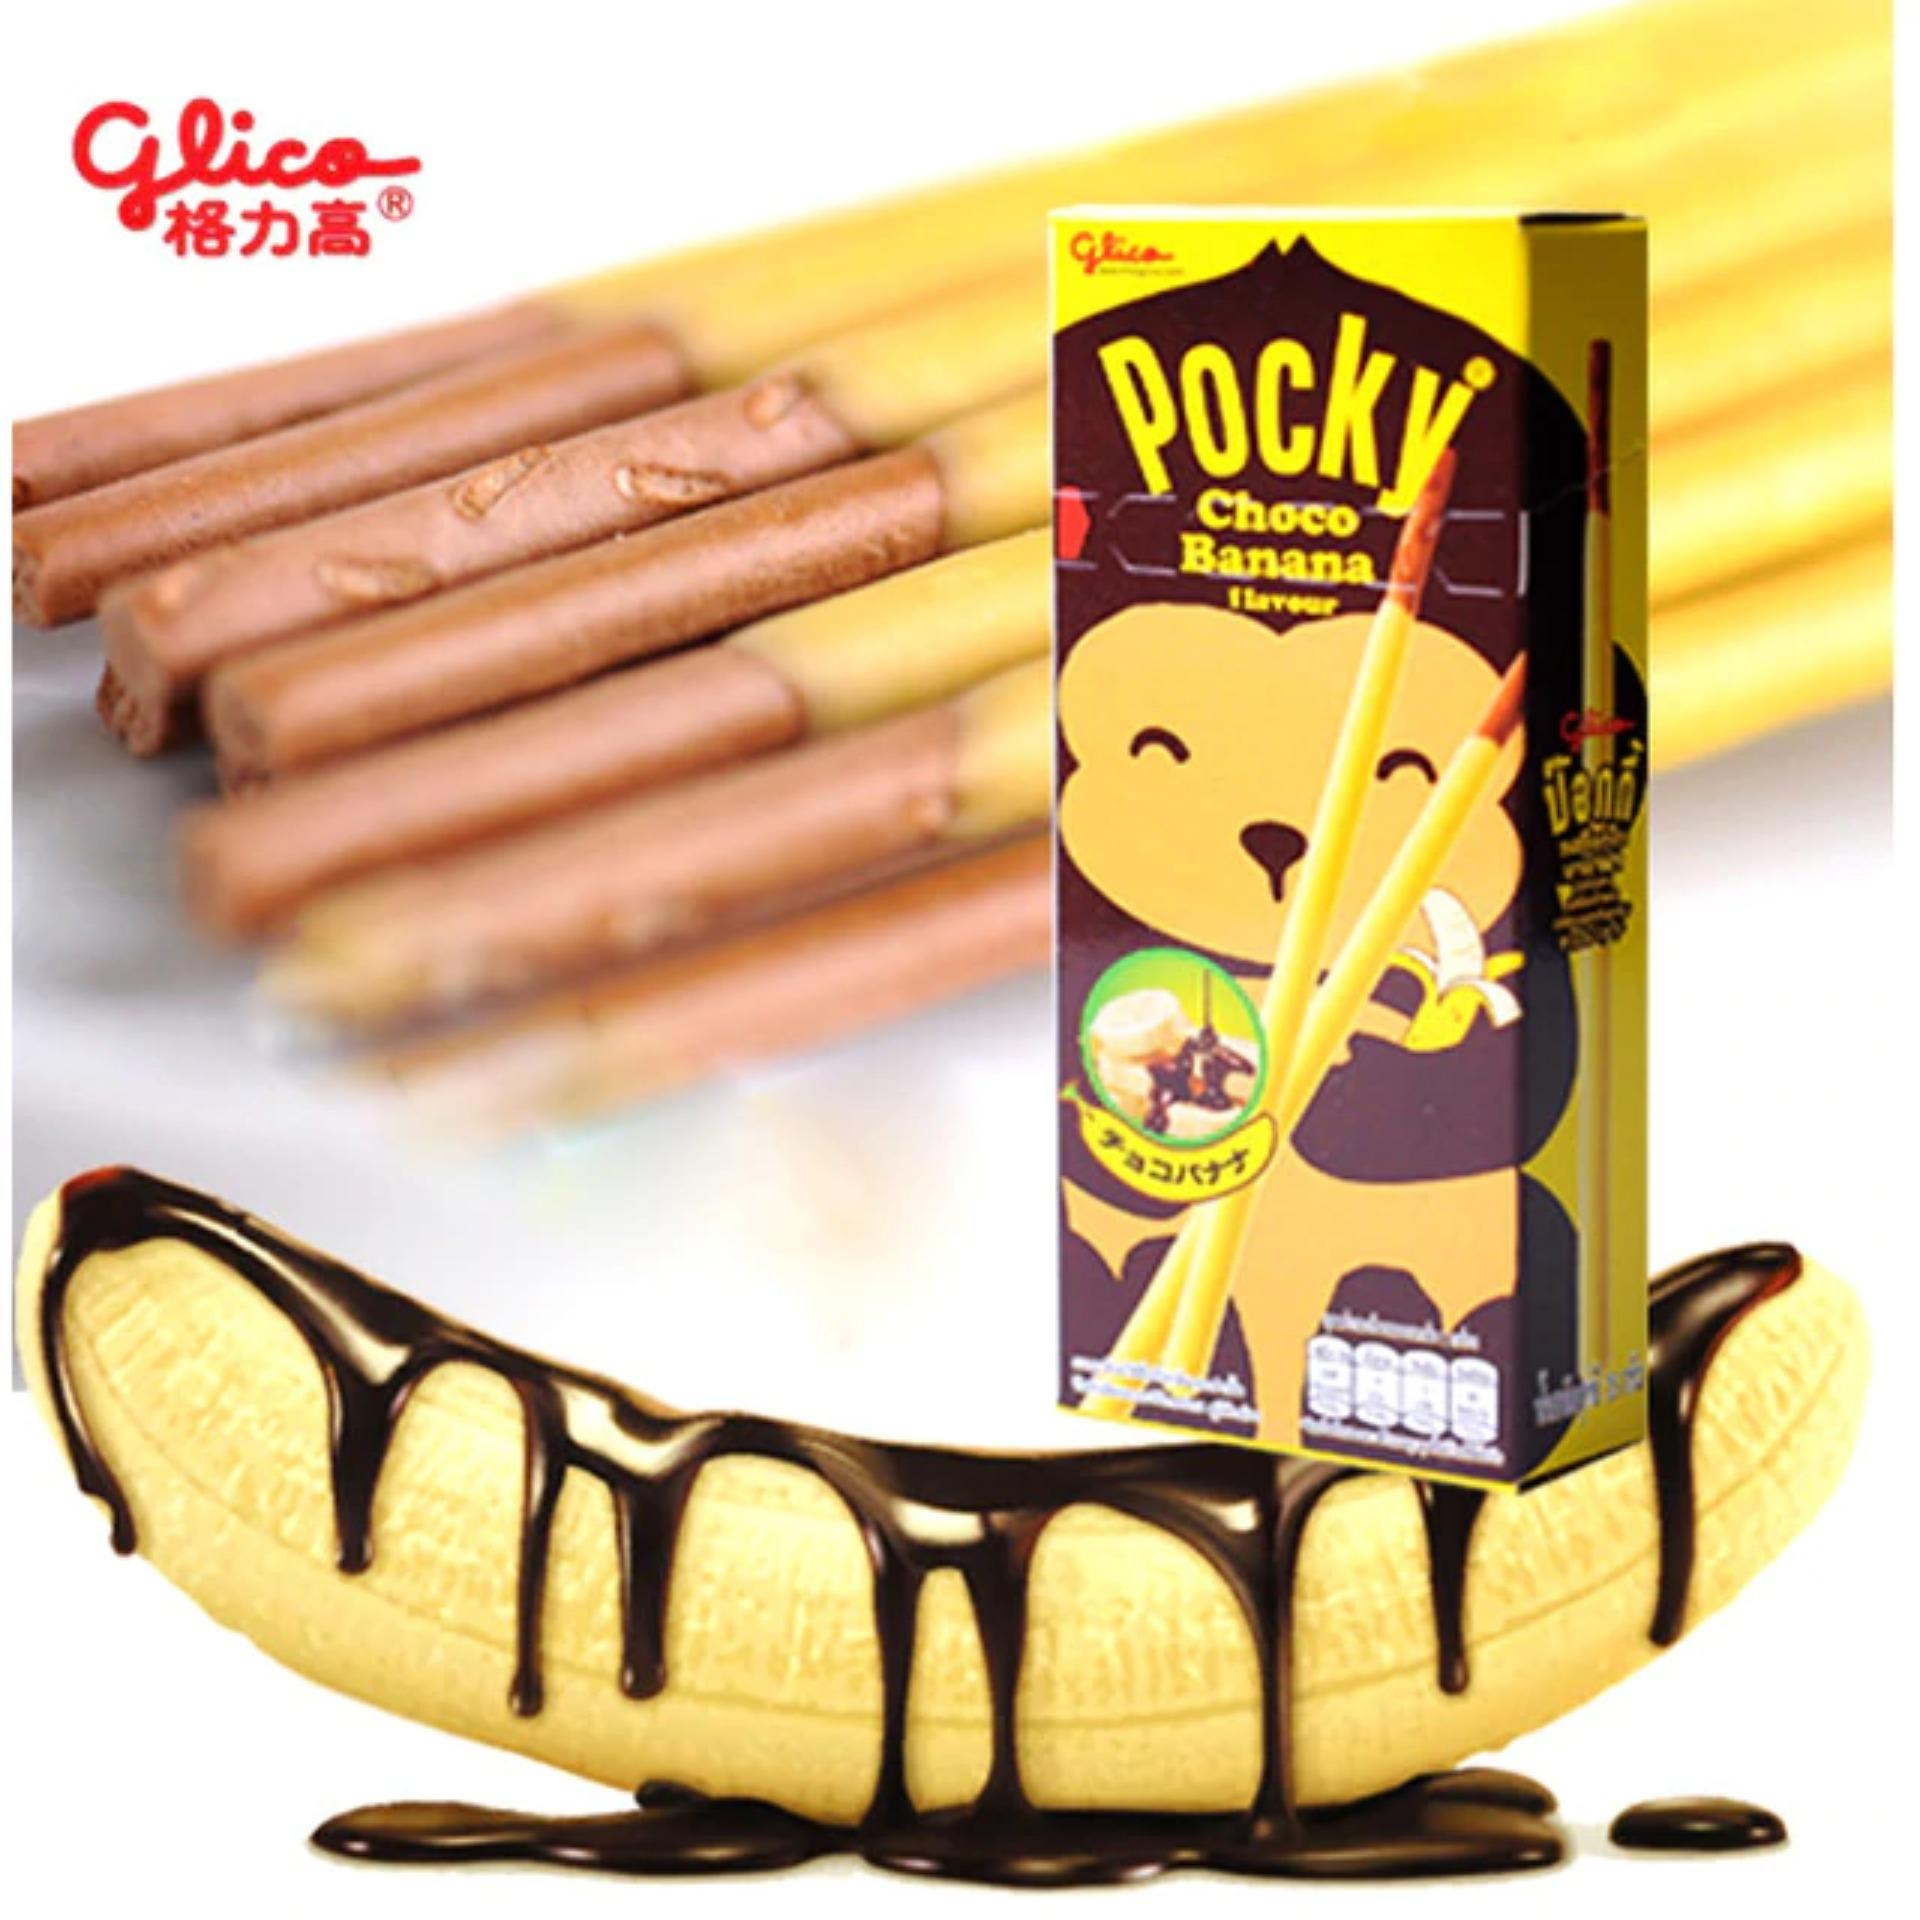 Pocky Choco Banana Chocolate Biscuit Stick Coated With Banana Flavour ( 1 Pack) By Vsgadgetssg.